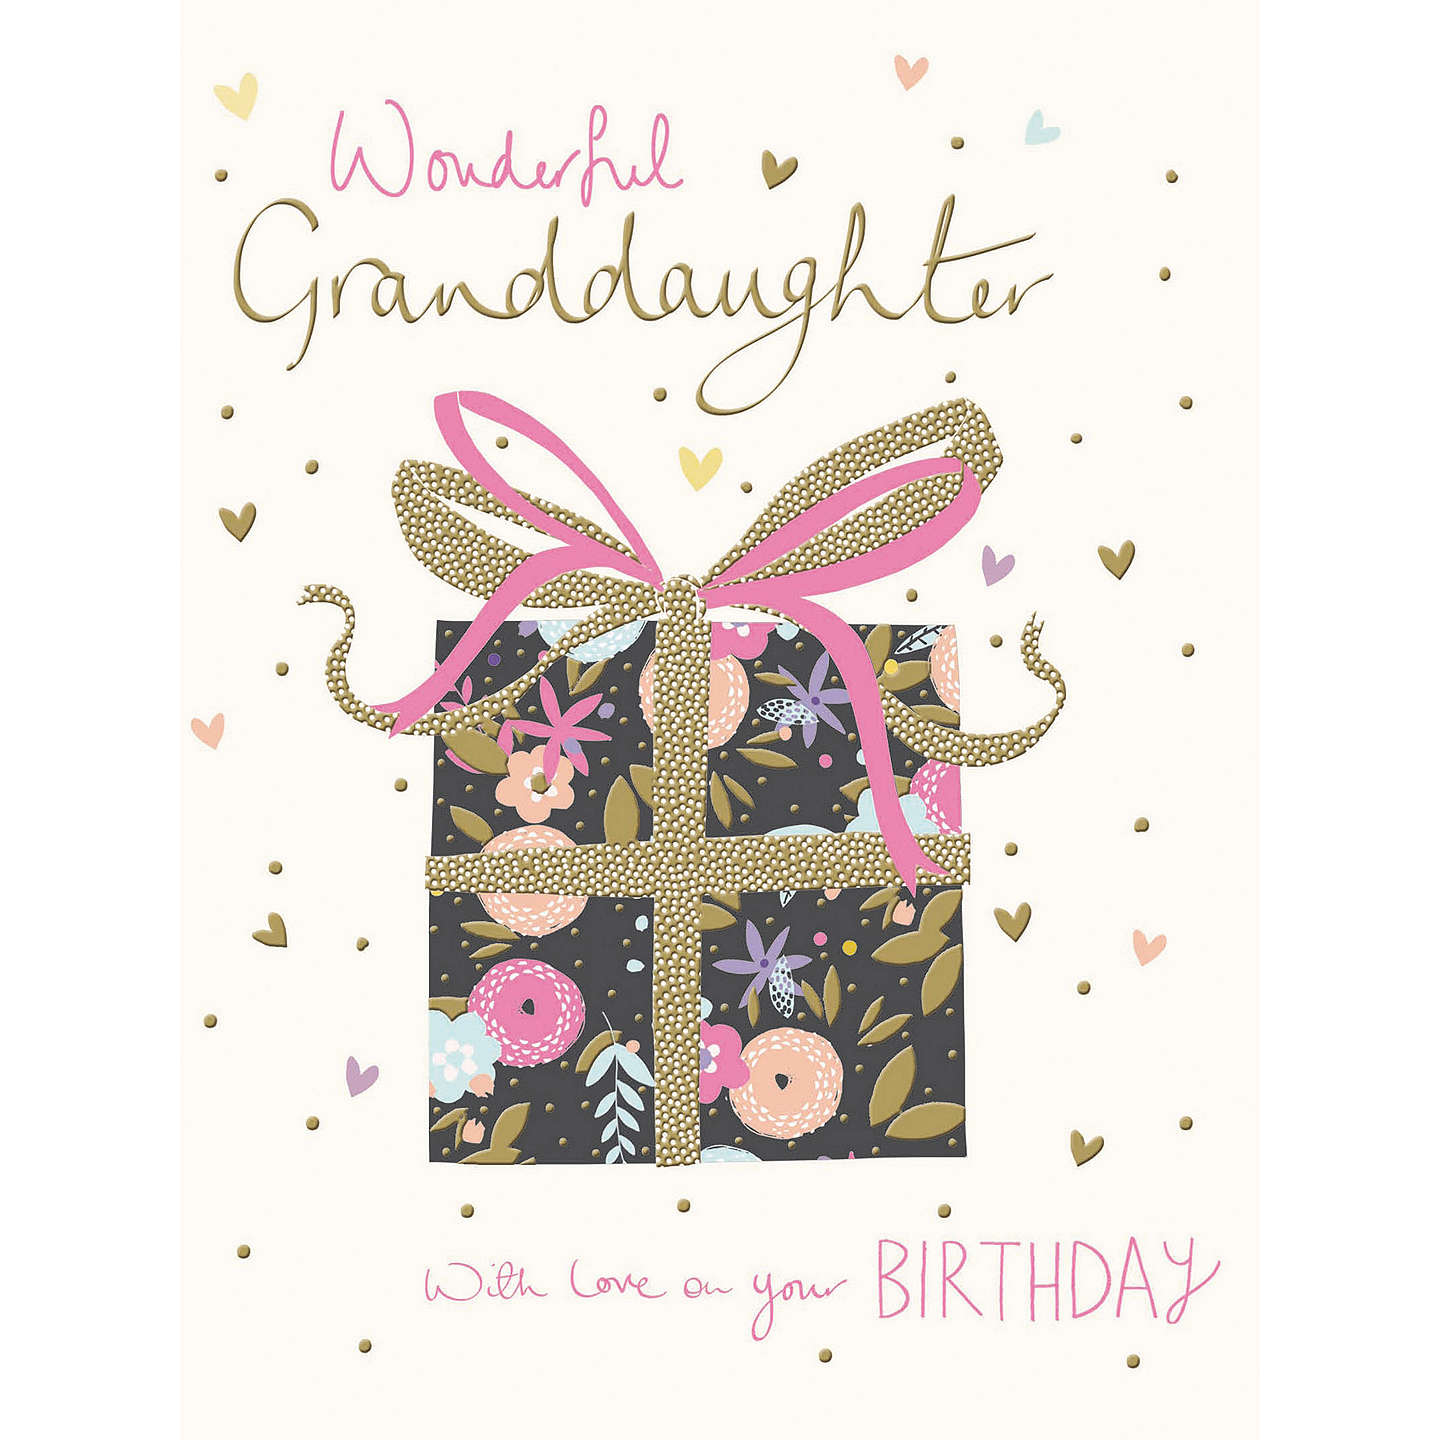 Woodmansterne wonderful granddaughter birthday card at john lewis buywoodmansterne wonderful granddaughter birthday card online at johnlewis bookmarktalkfo